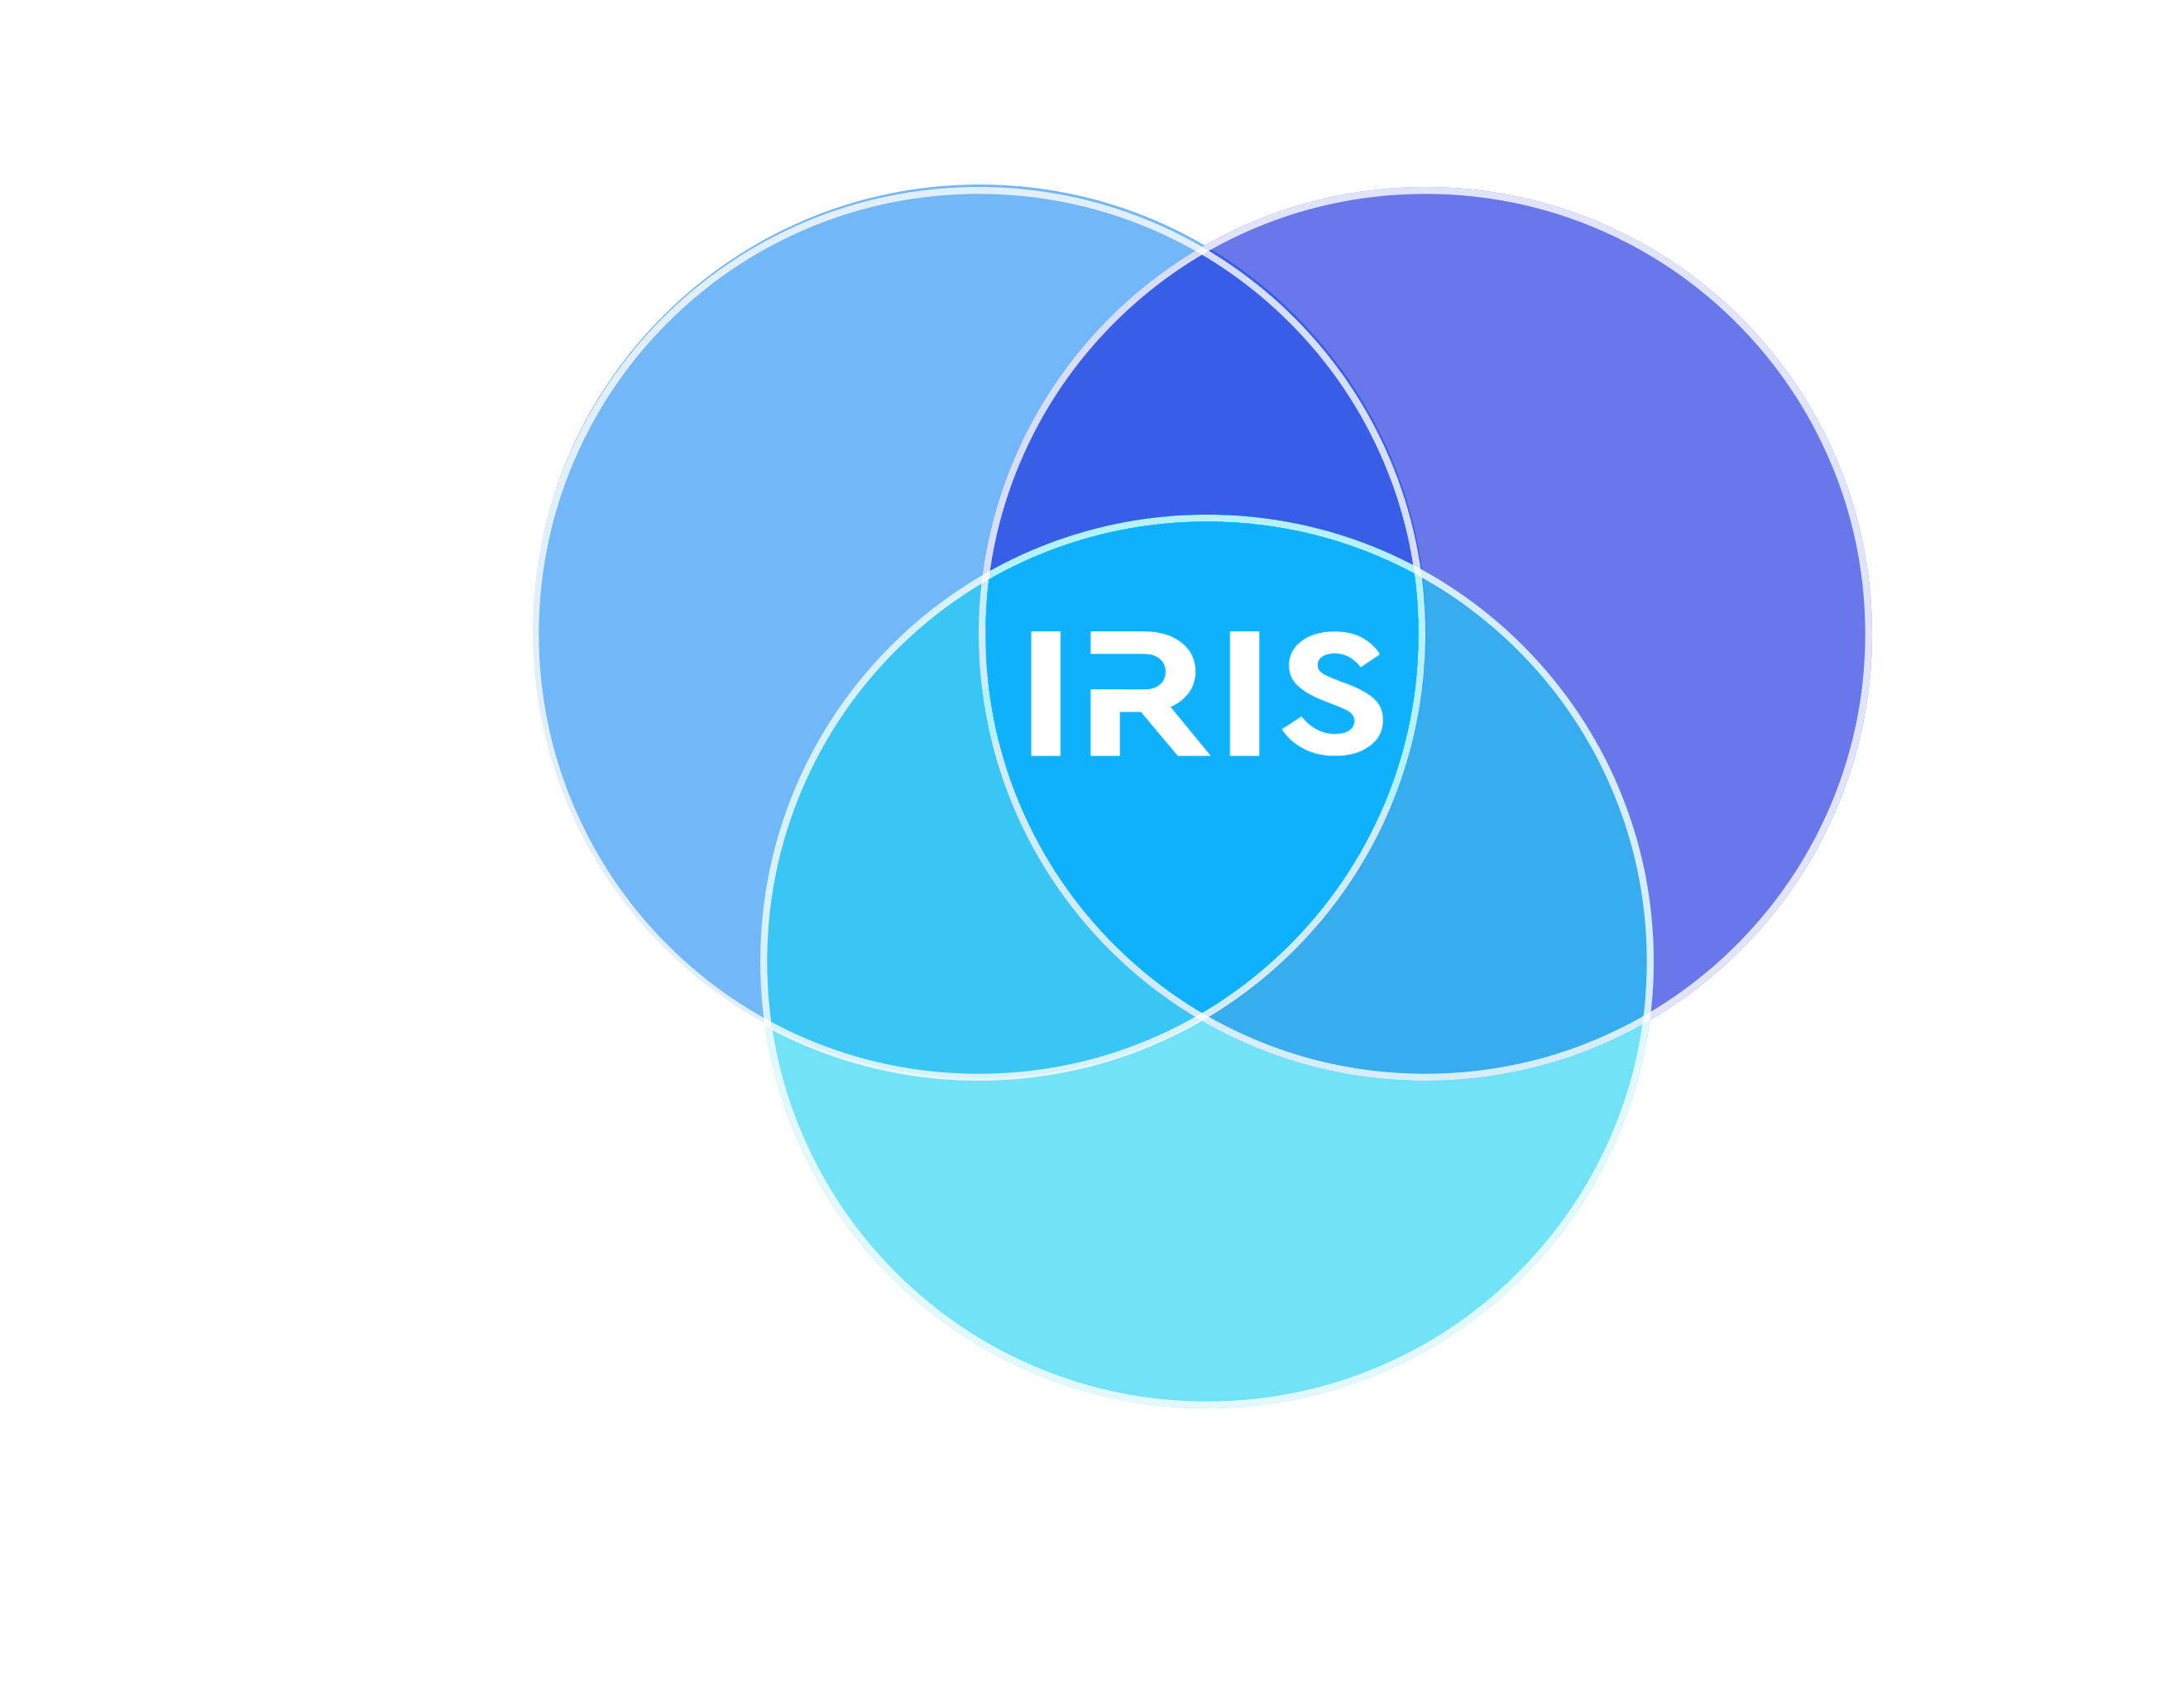 IRIS live cell imaging incubator venn diagram